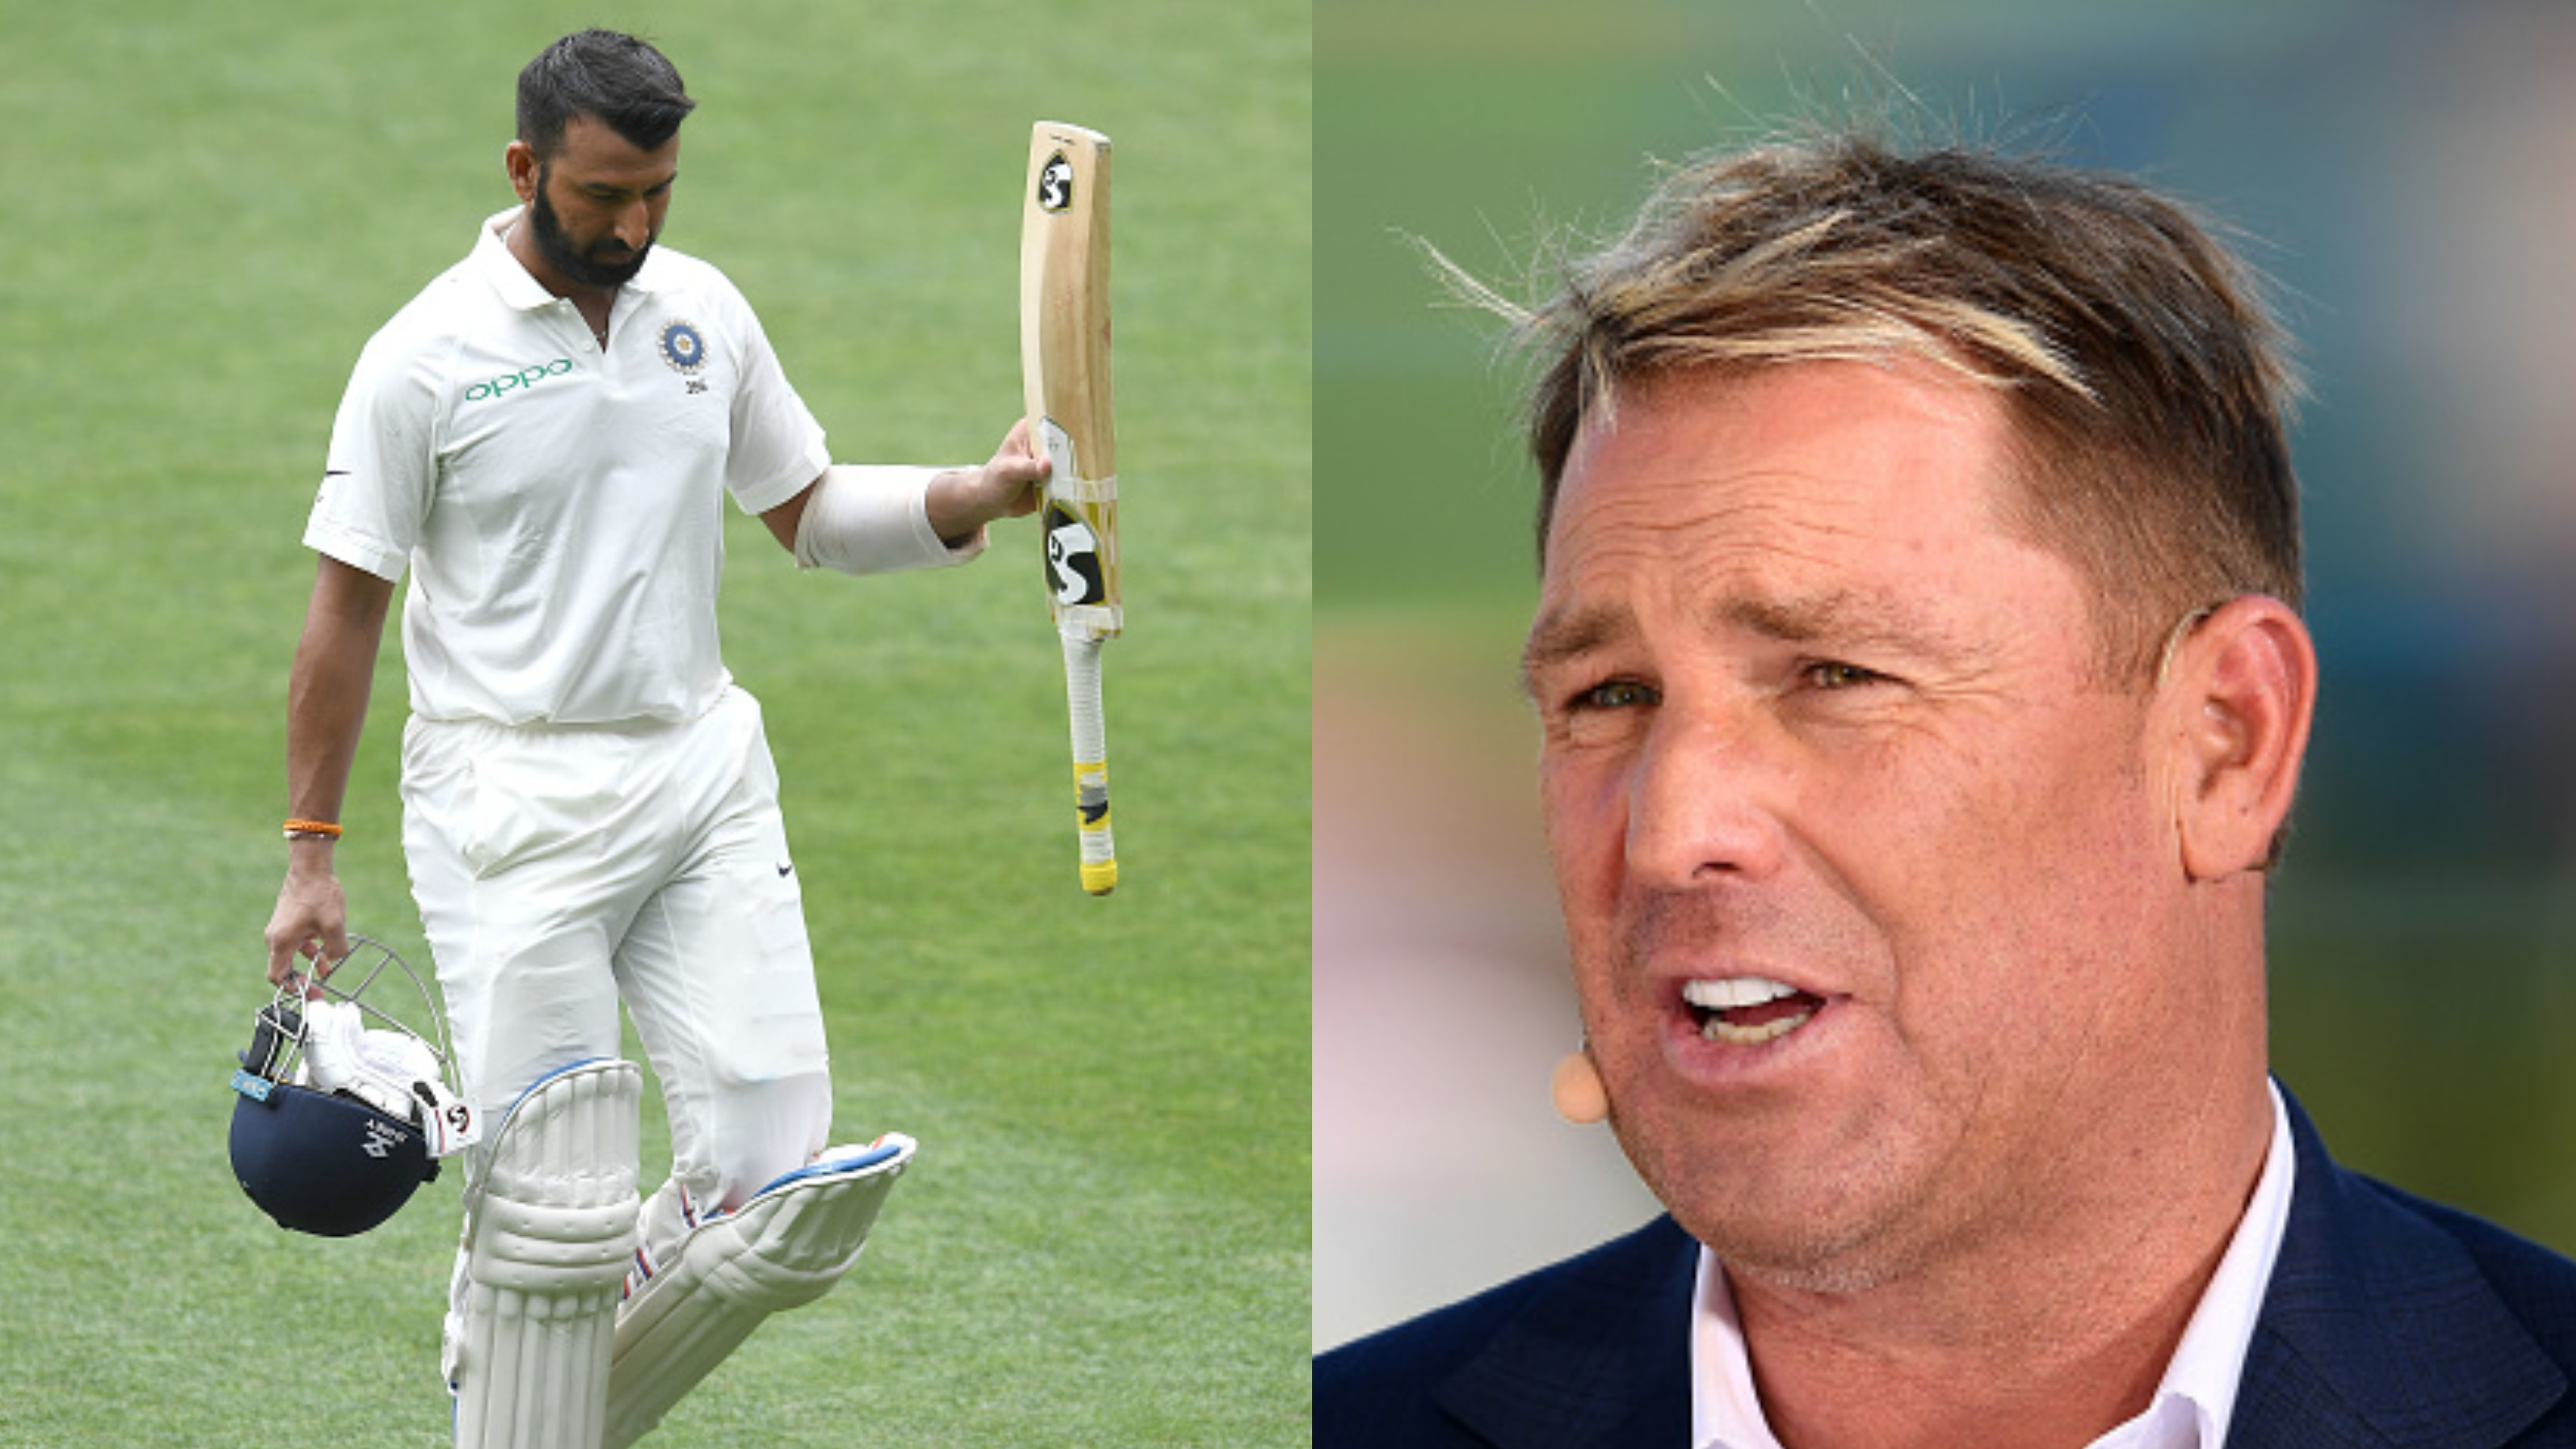 AUS v IND 2018-19: Watch -Shane Warne correctly predicts that Lyon will dismiss Pujara